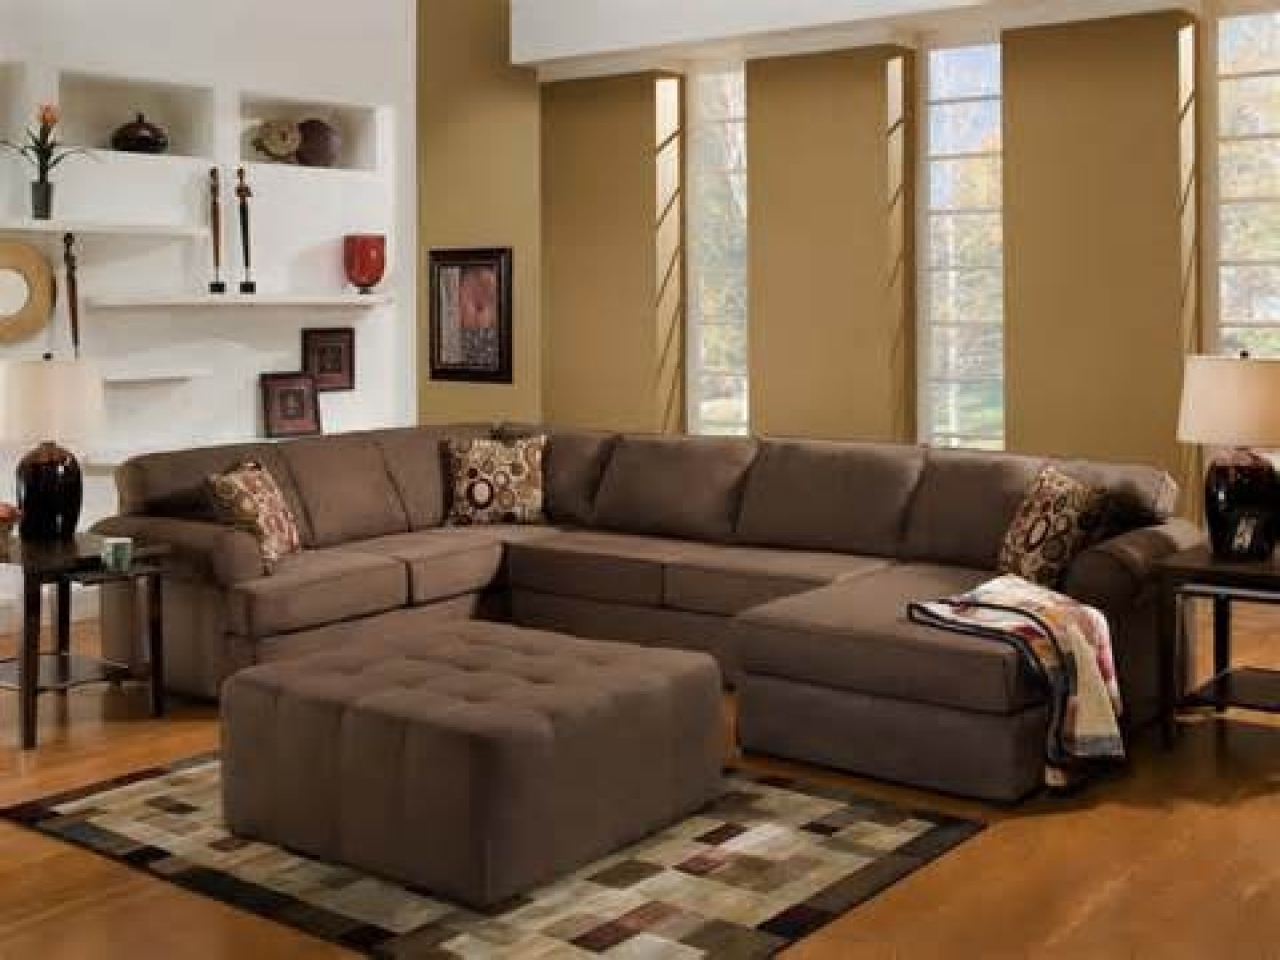 2019 Sectional Sofas At Big Lots Pertaining To Costco Furniture Sectional, Big Lots Furniture Sofa Big Lots (View 2 of 20)